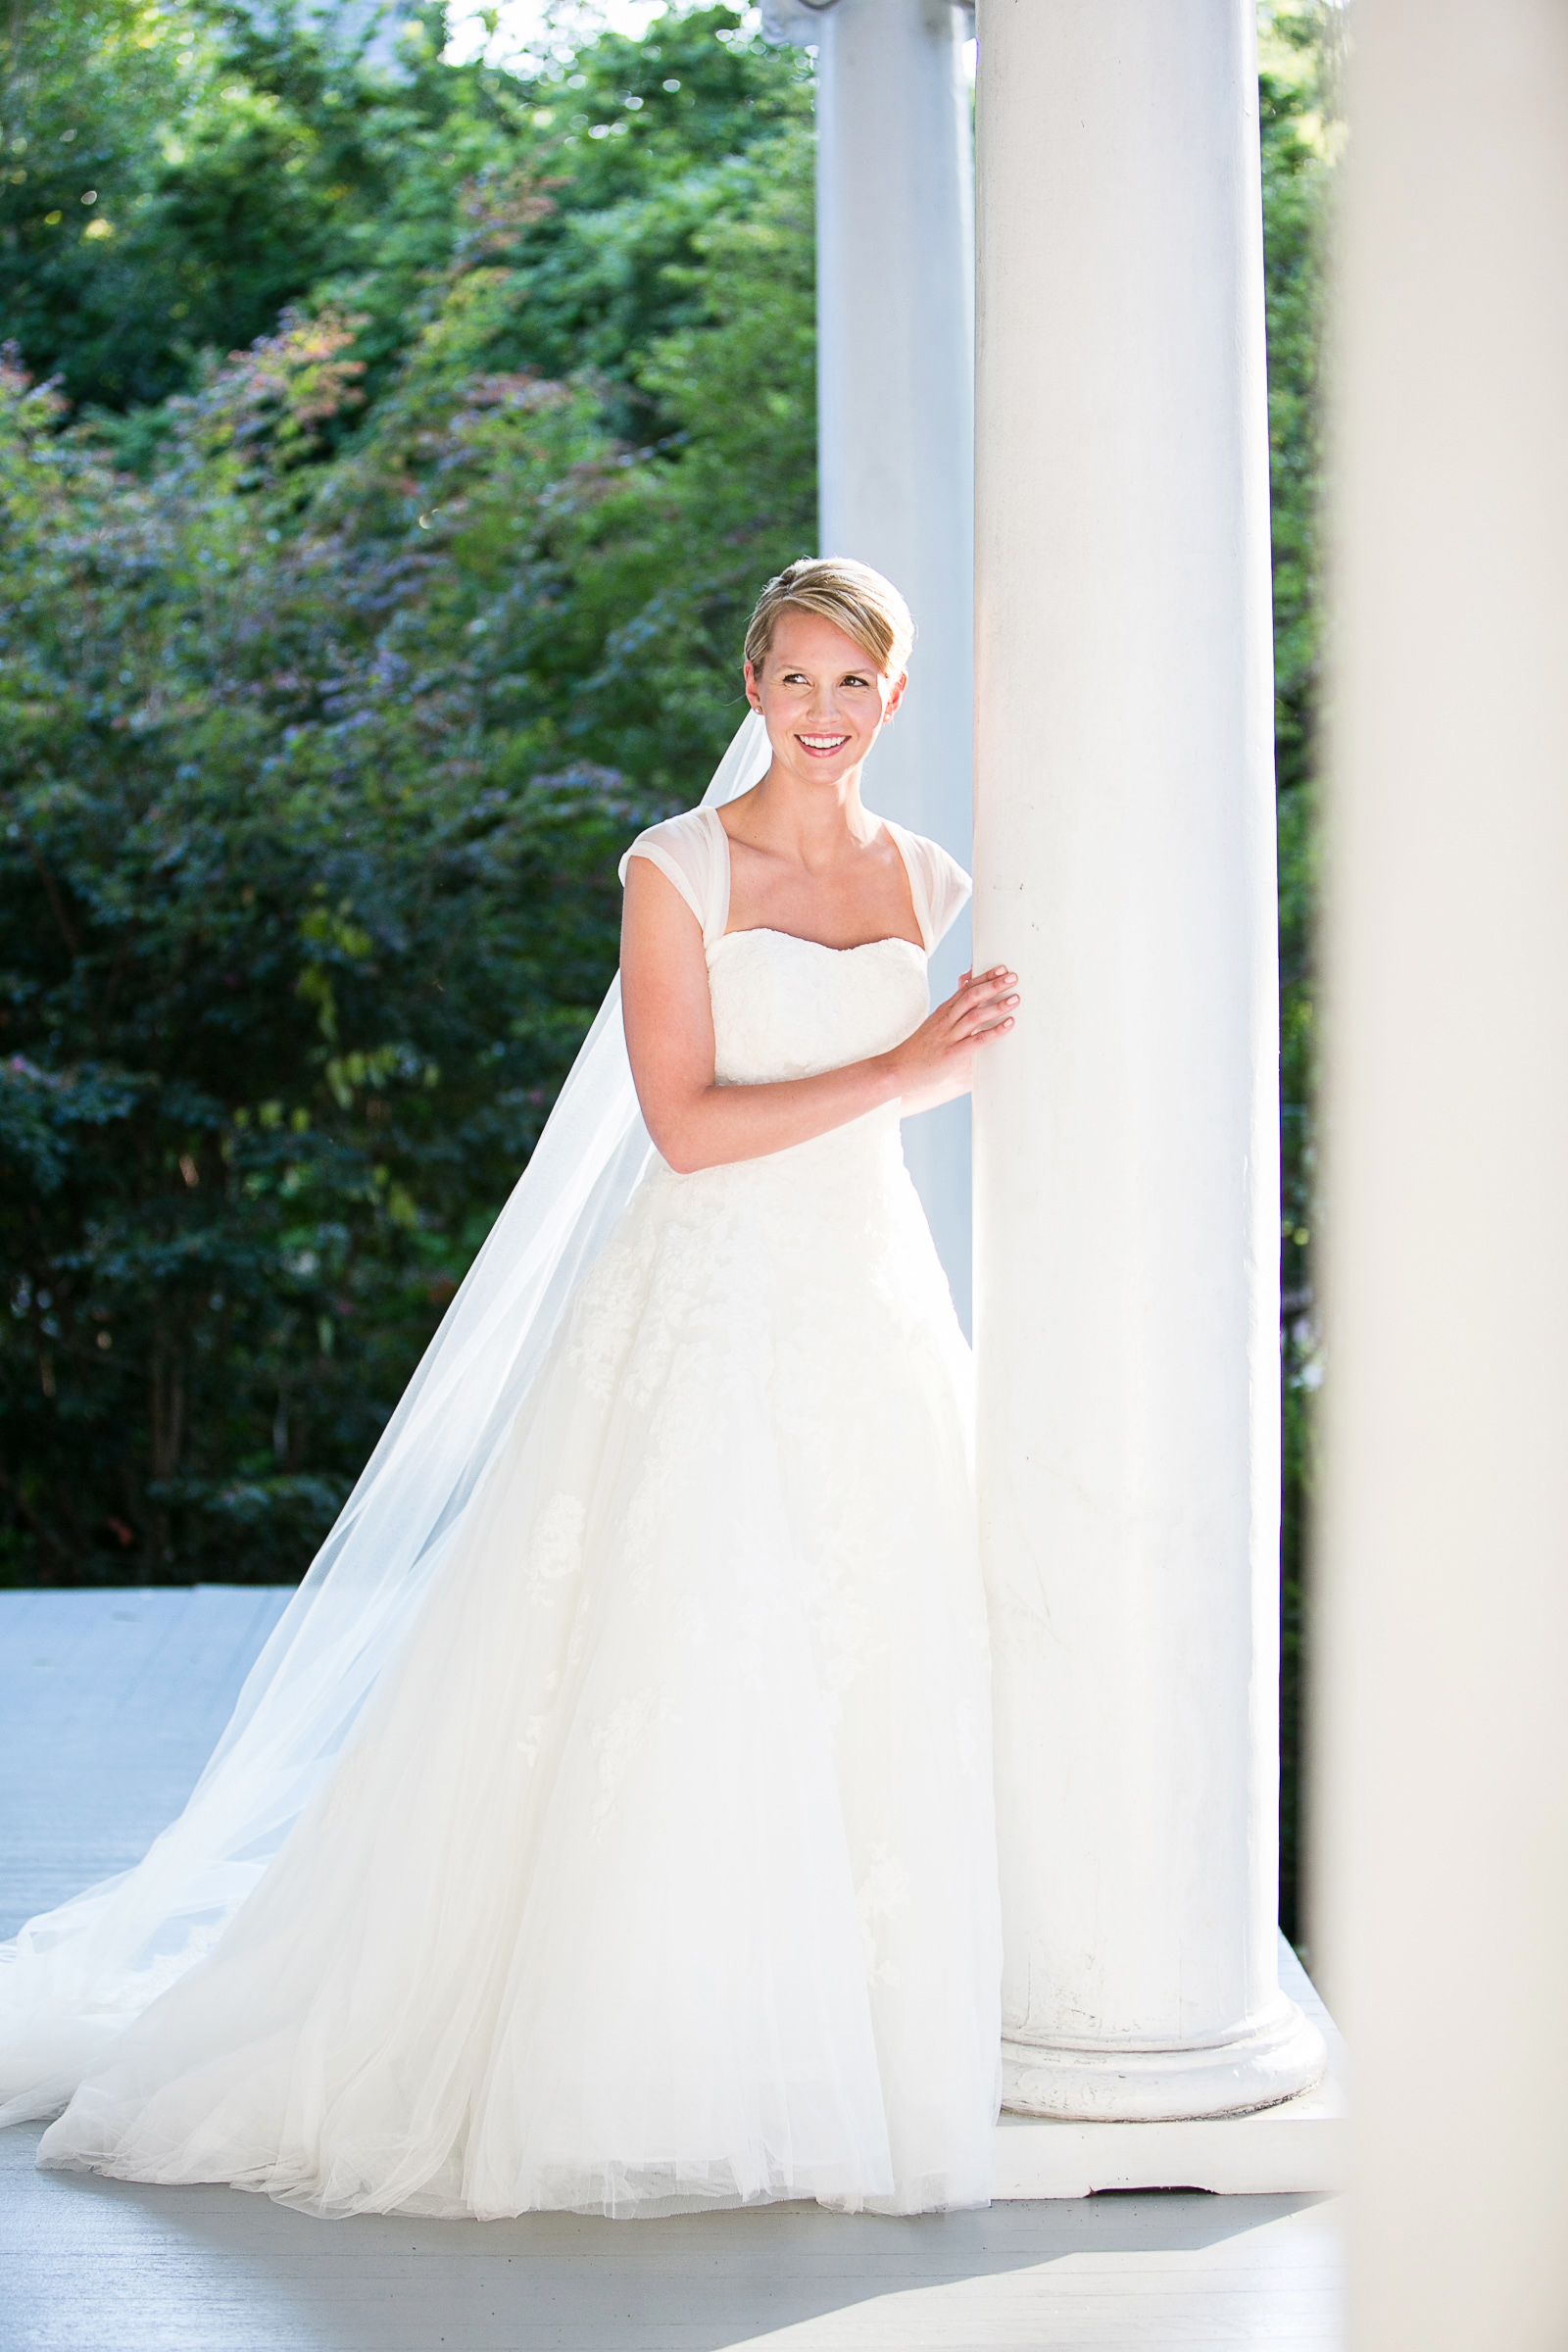 Daughtridge_bridal-061712-125.jpg